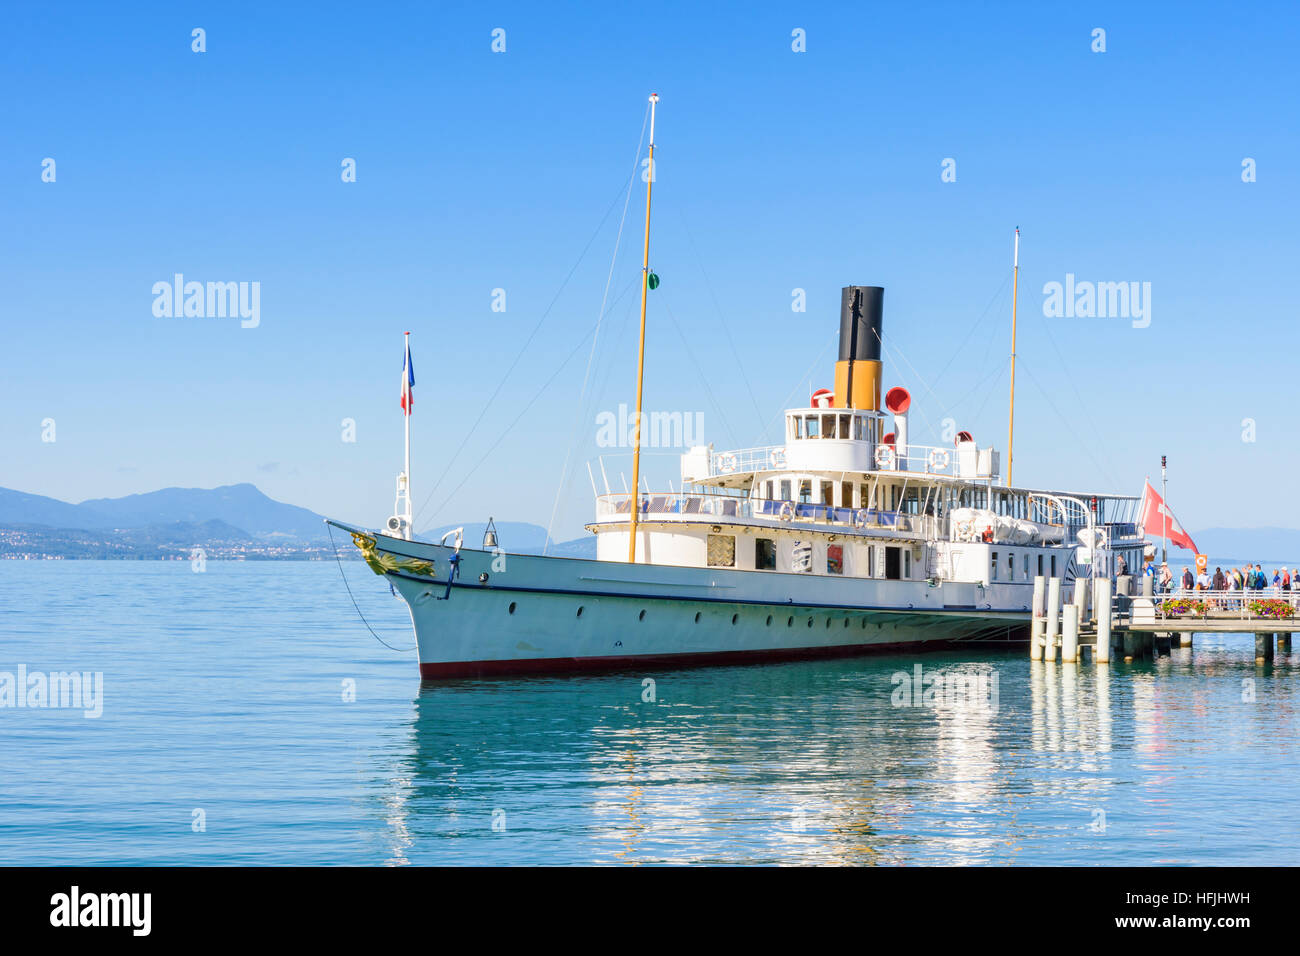 The Belle Epoque paddle steamer La Suisse moored in Ouchy with passengers boarding, Lausanne, Switzerland - Stock Image